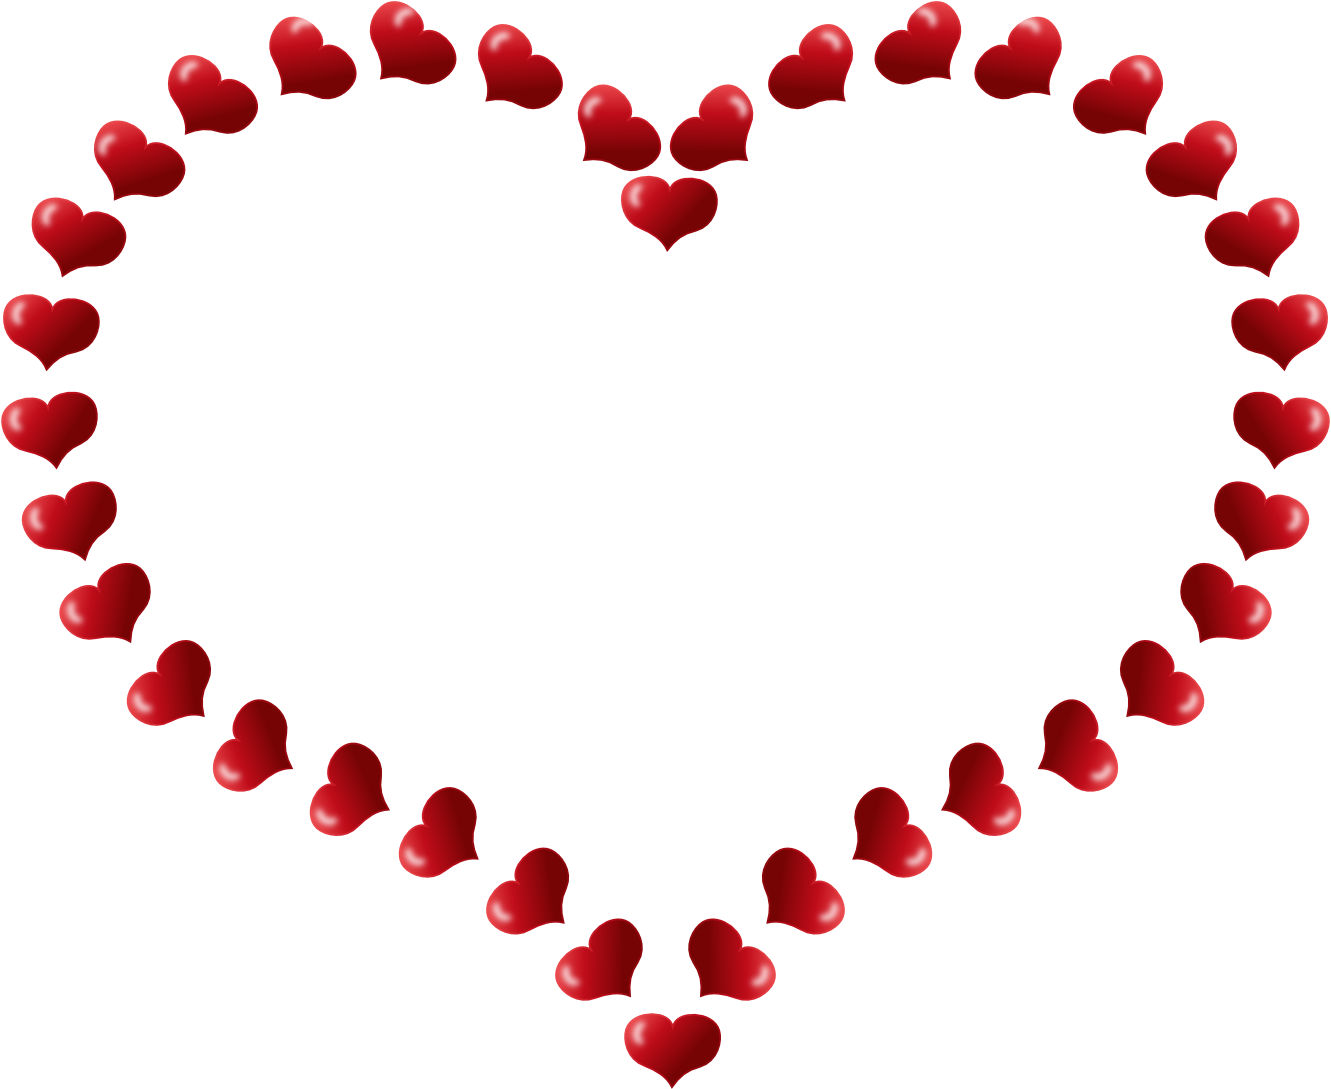 Mothers Day Red Heart Shaped Border with Little Hearts Flowers - PNG HD Hearts And Flowers